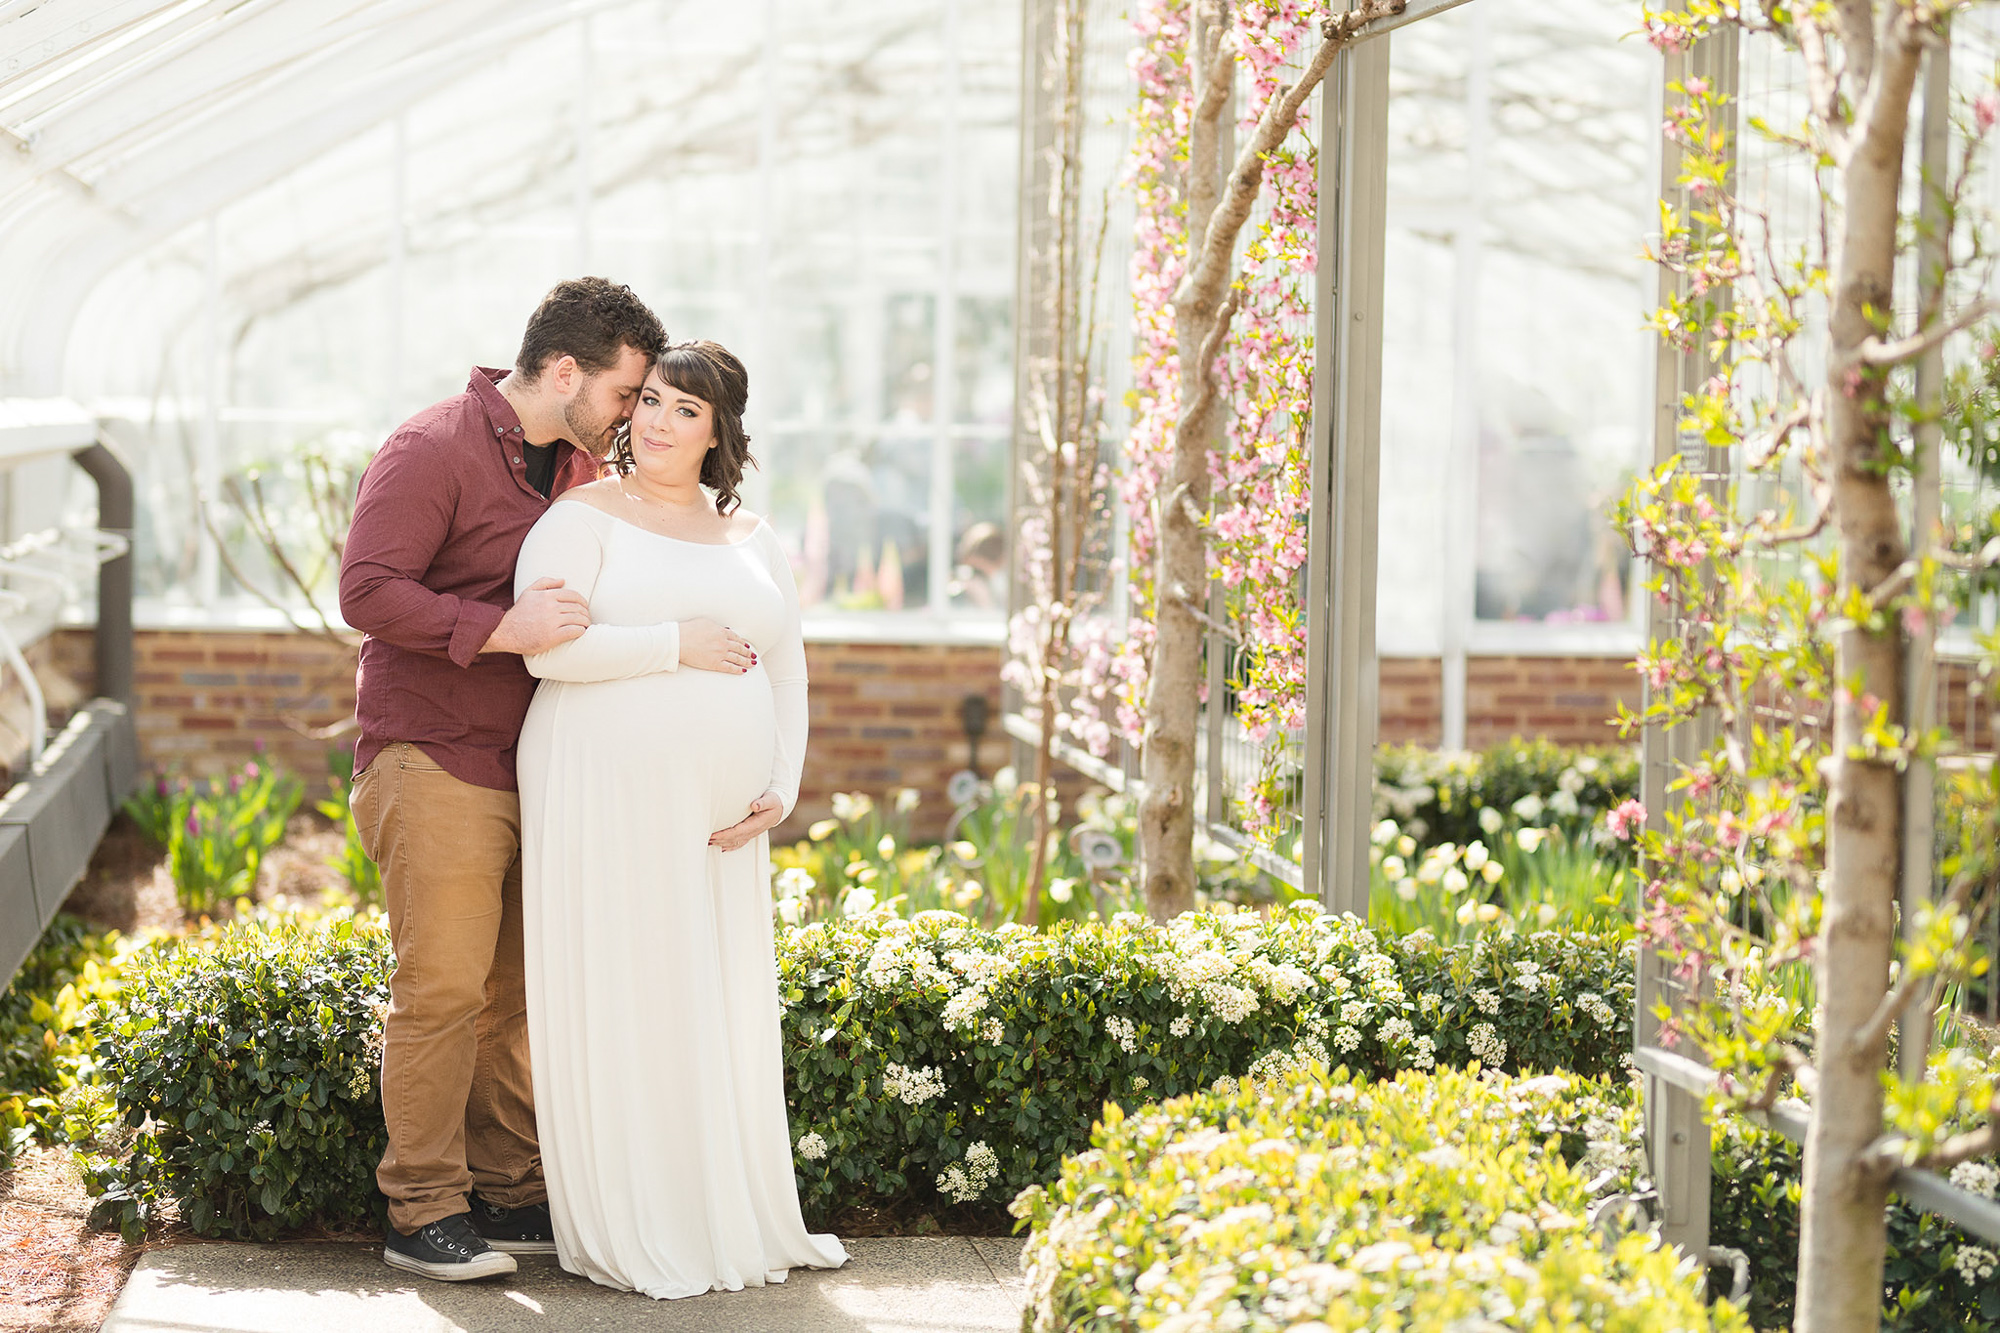 Longwood-gardens-maternity-photos-113.jpg